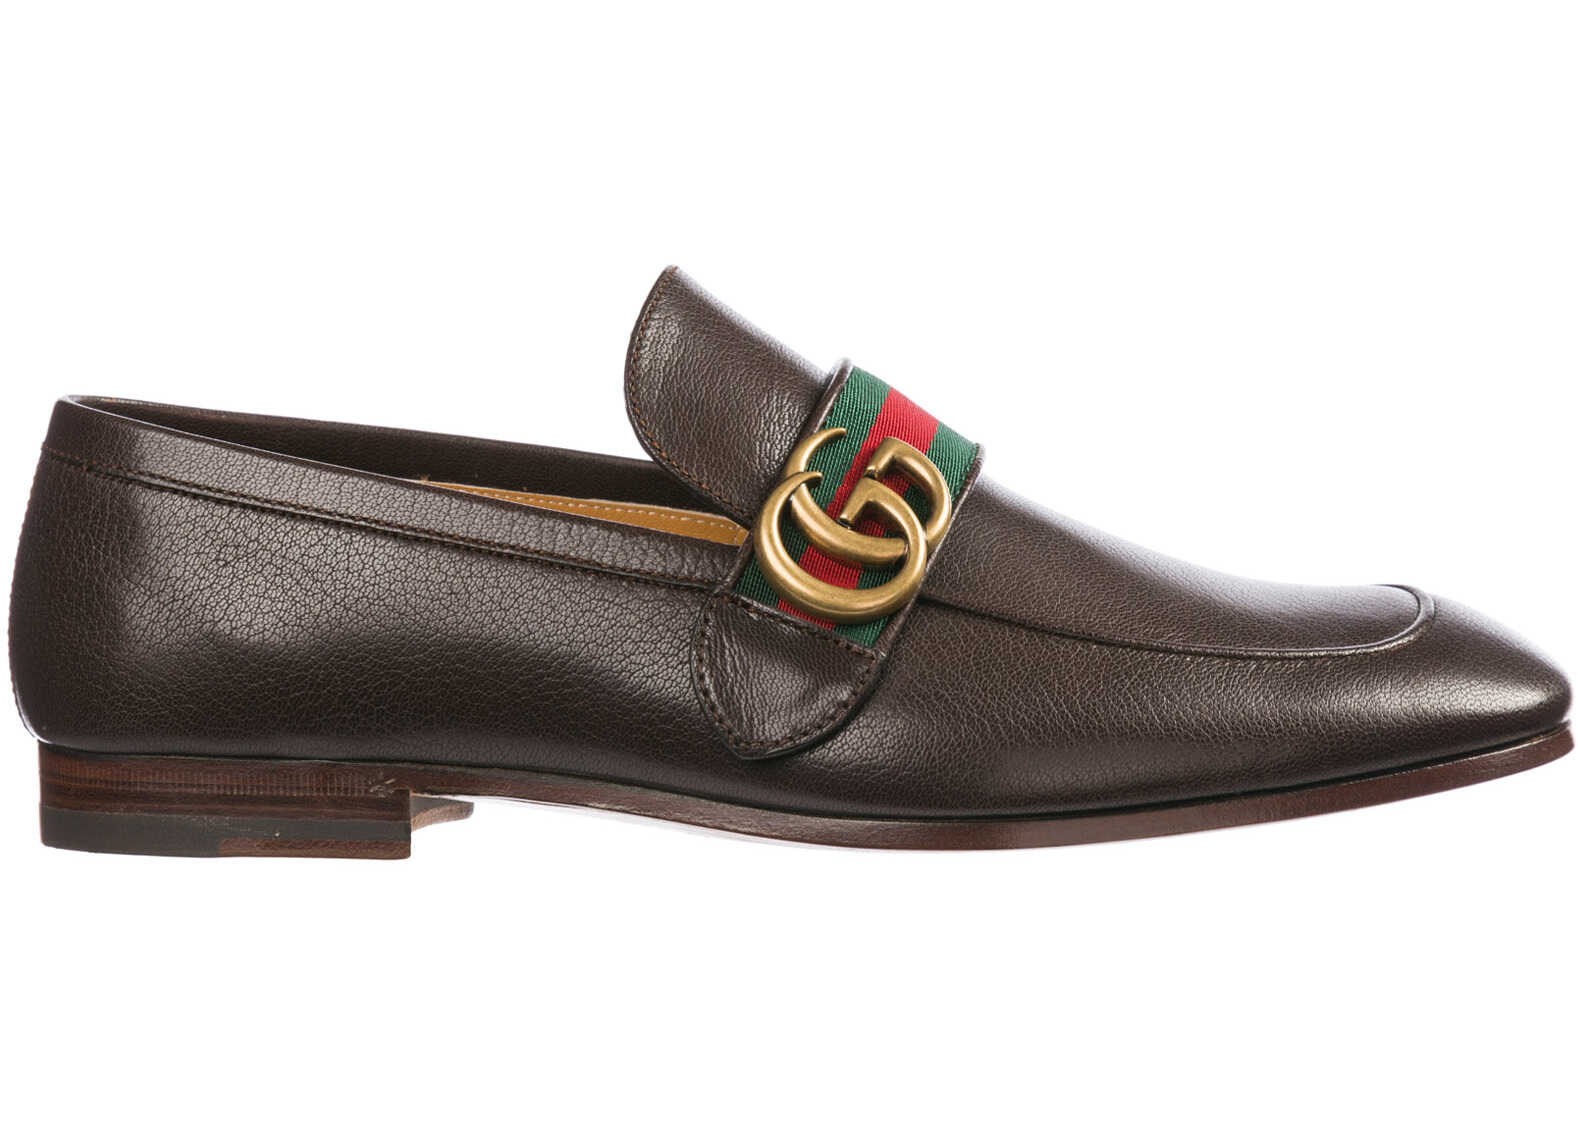 Gucci Moccasins Quentin Brown